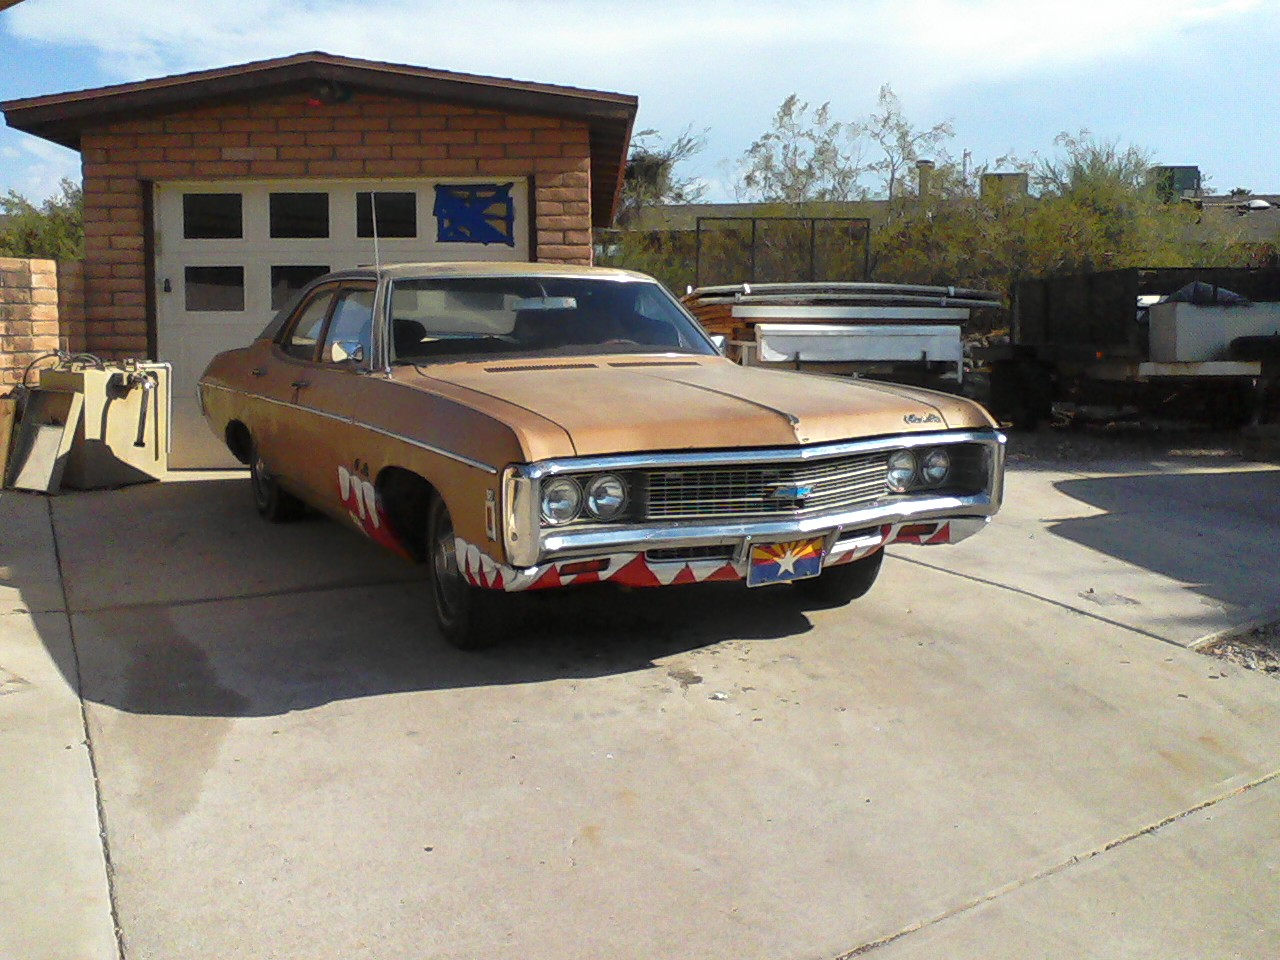 1969 Chevrolet Bel Air picture